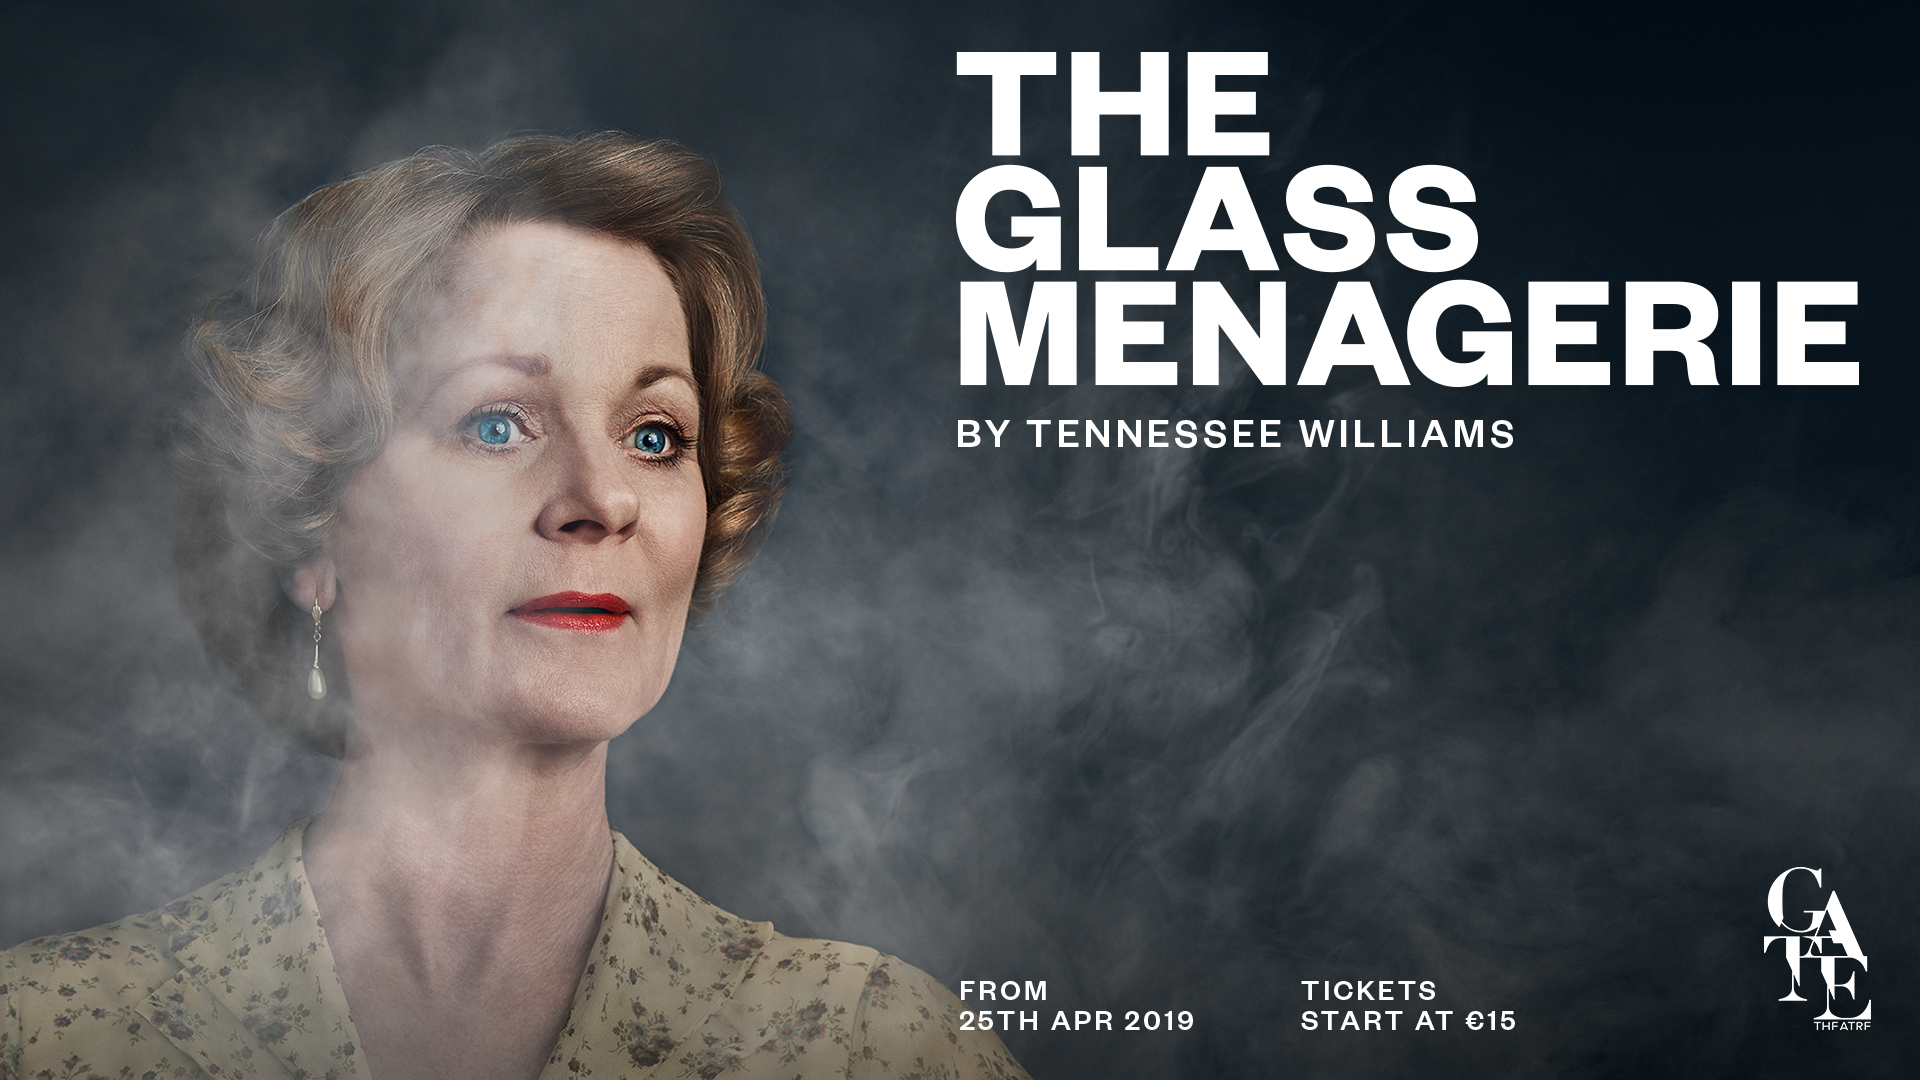 Samantha Bond as Amanda Wingfield in the Gate Theatre's production of The Glass Menagerie. Image shot by Gillian Hyland.